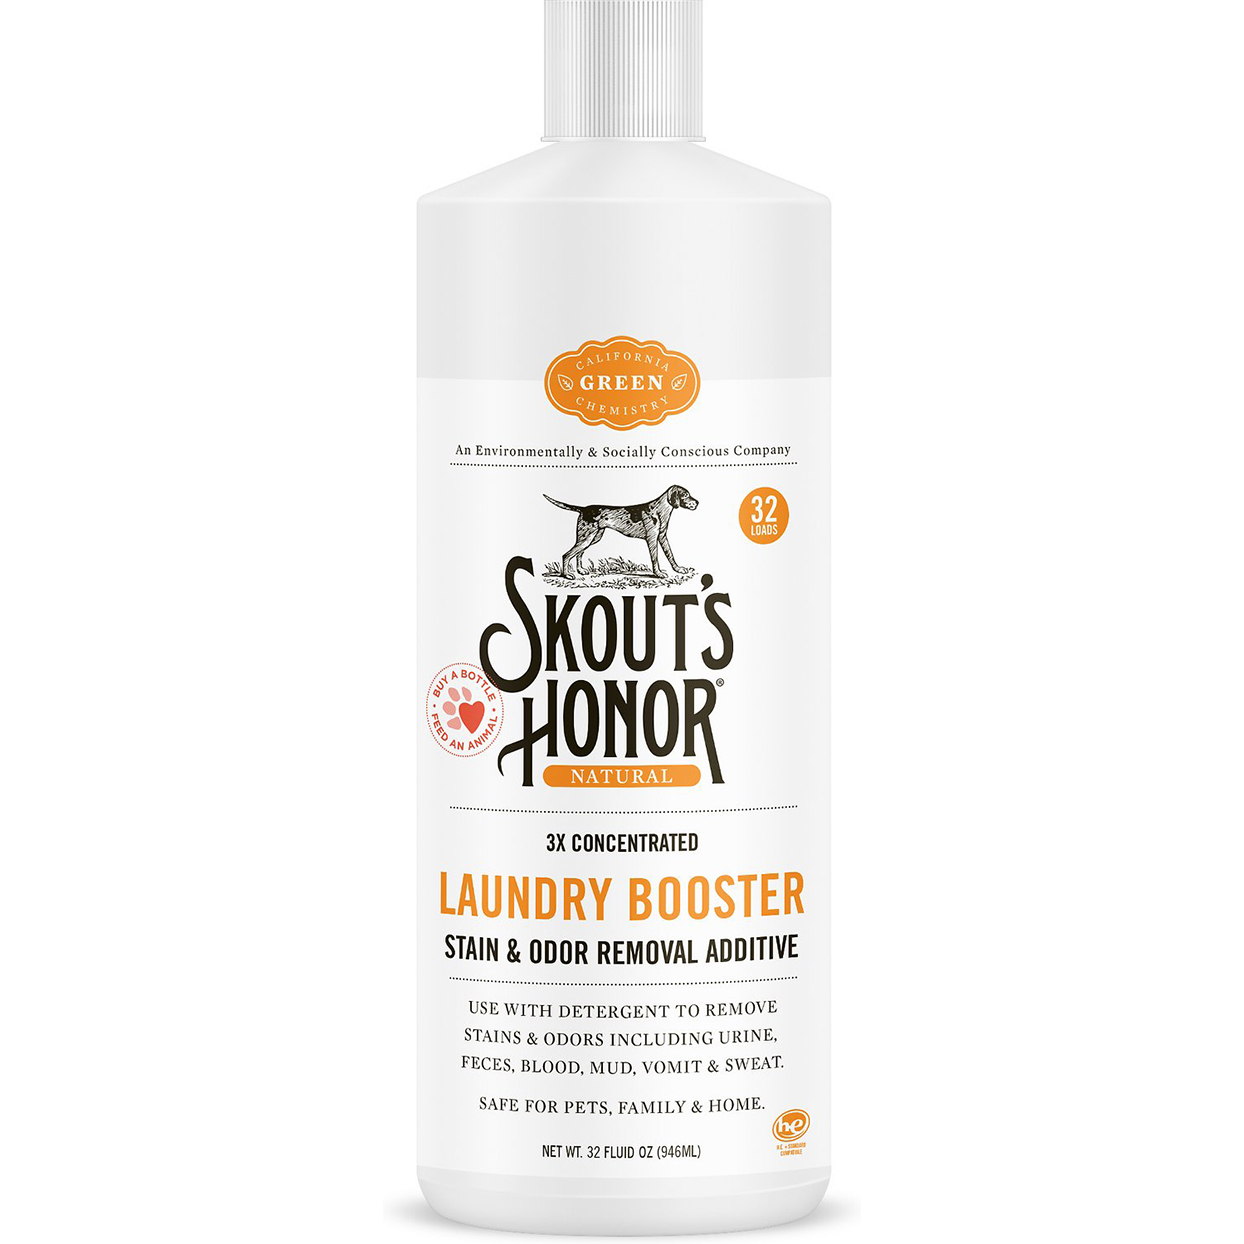 skouts honor laundry booster stain removal